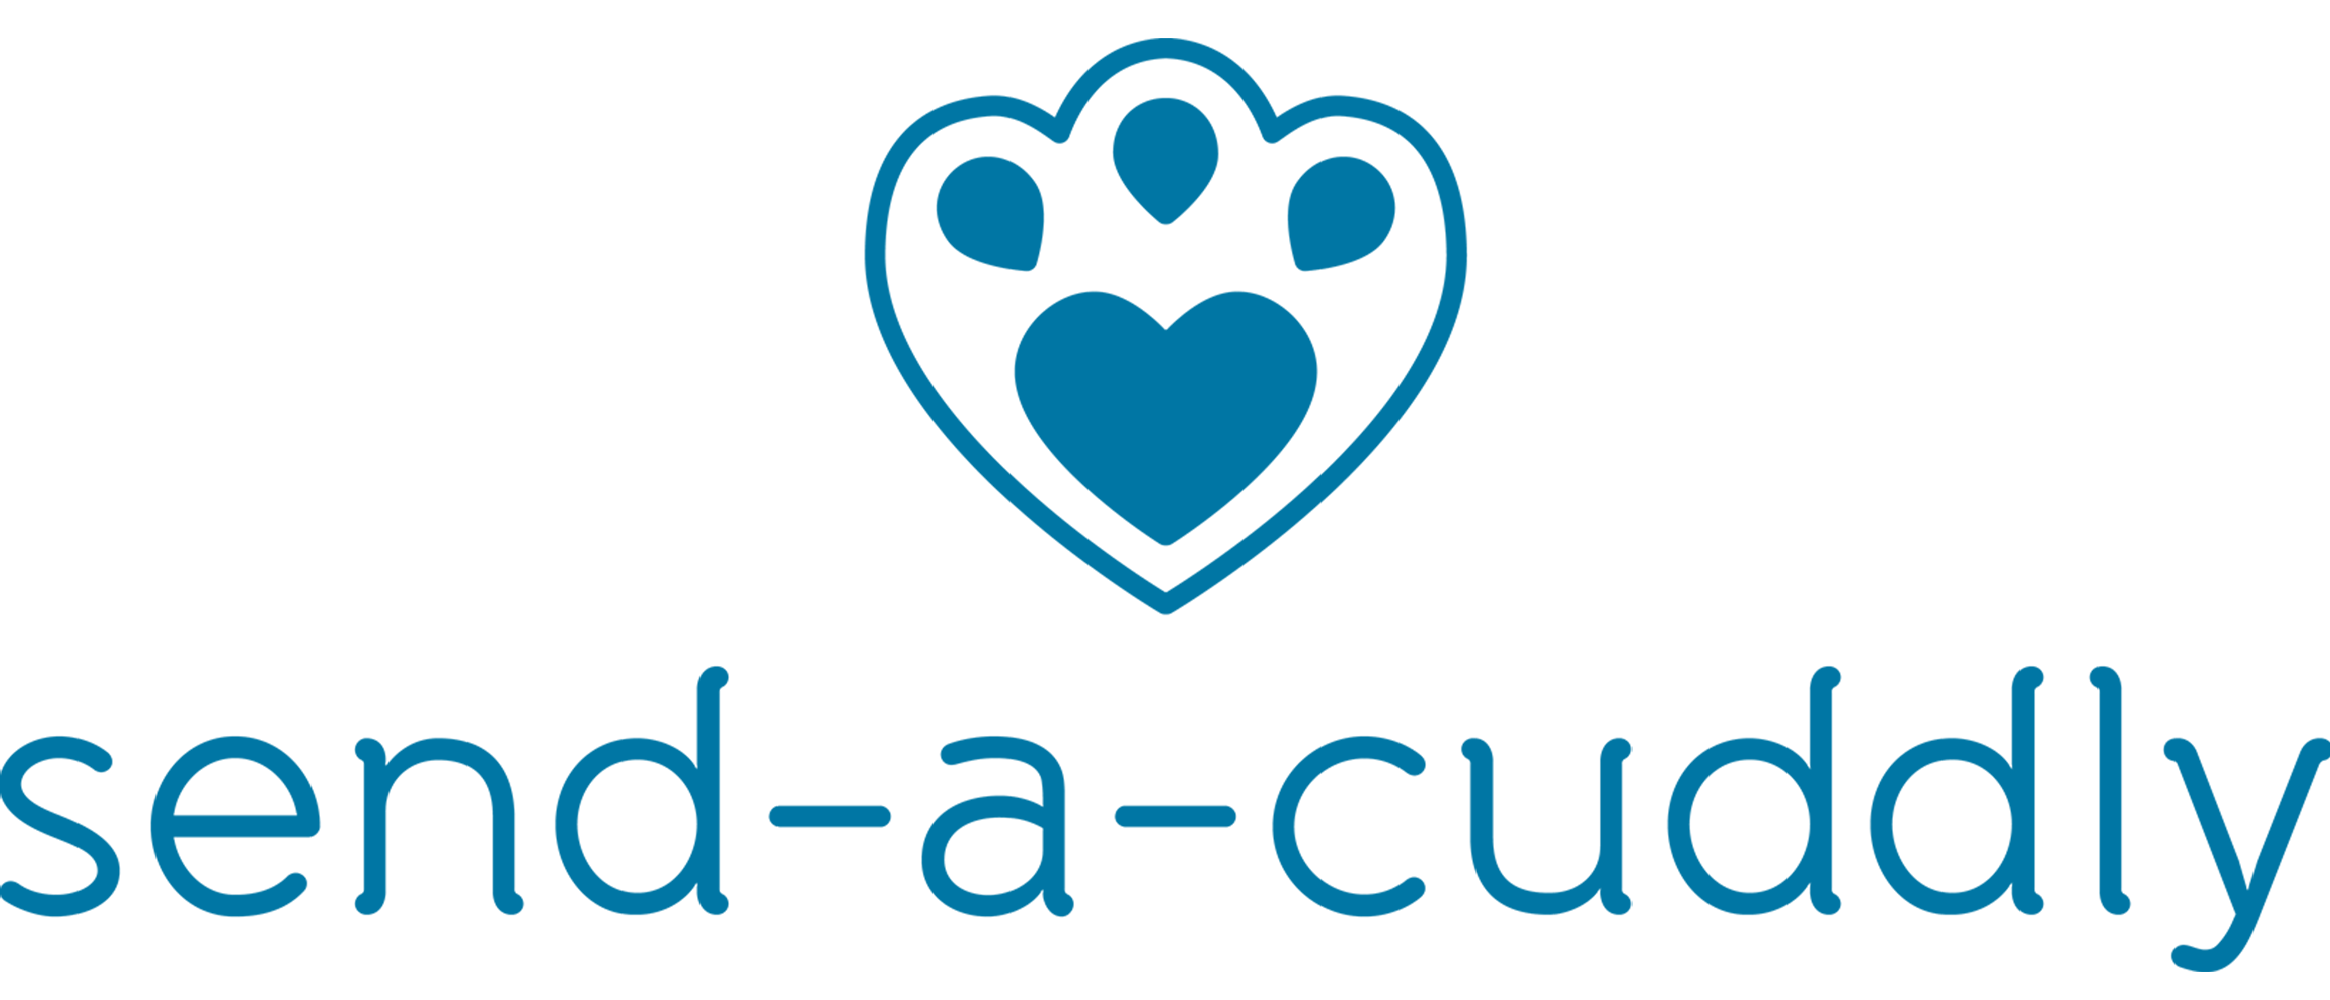 Sendacuddly.co.uk